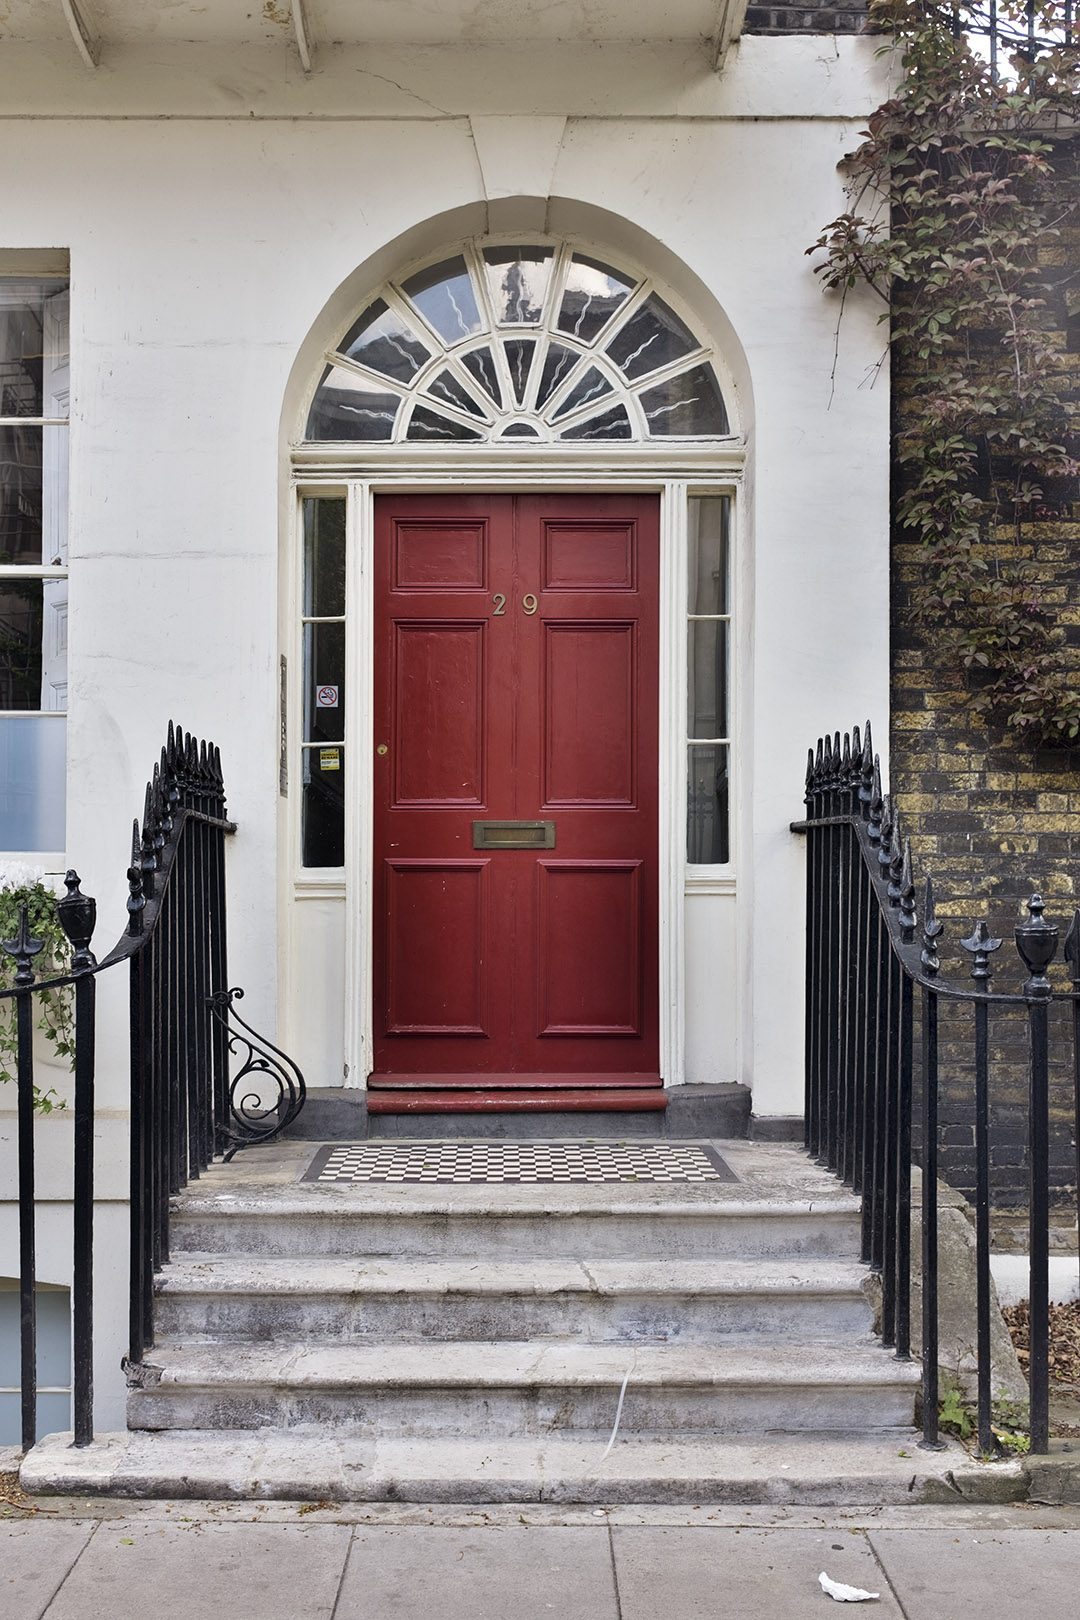 A red London typical door